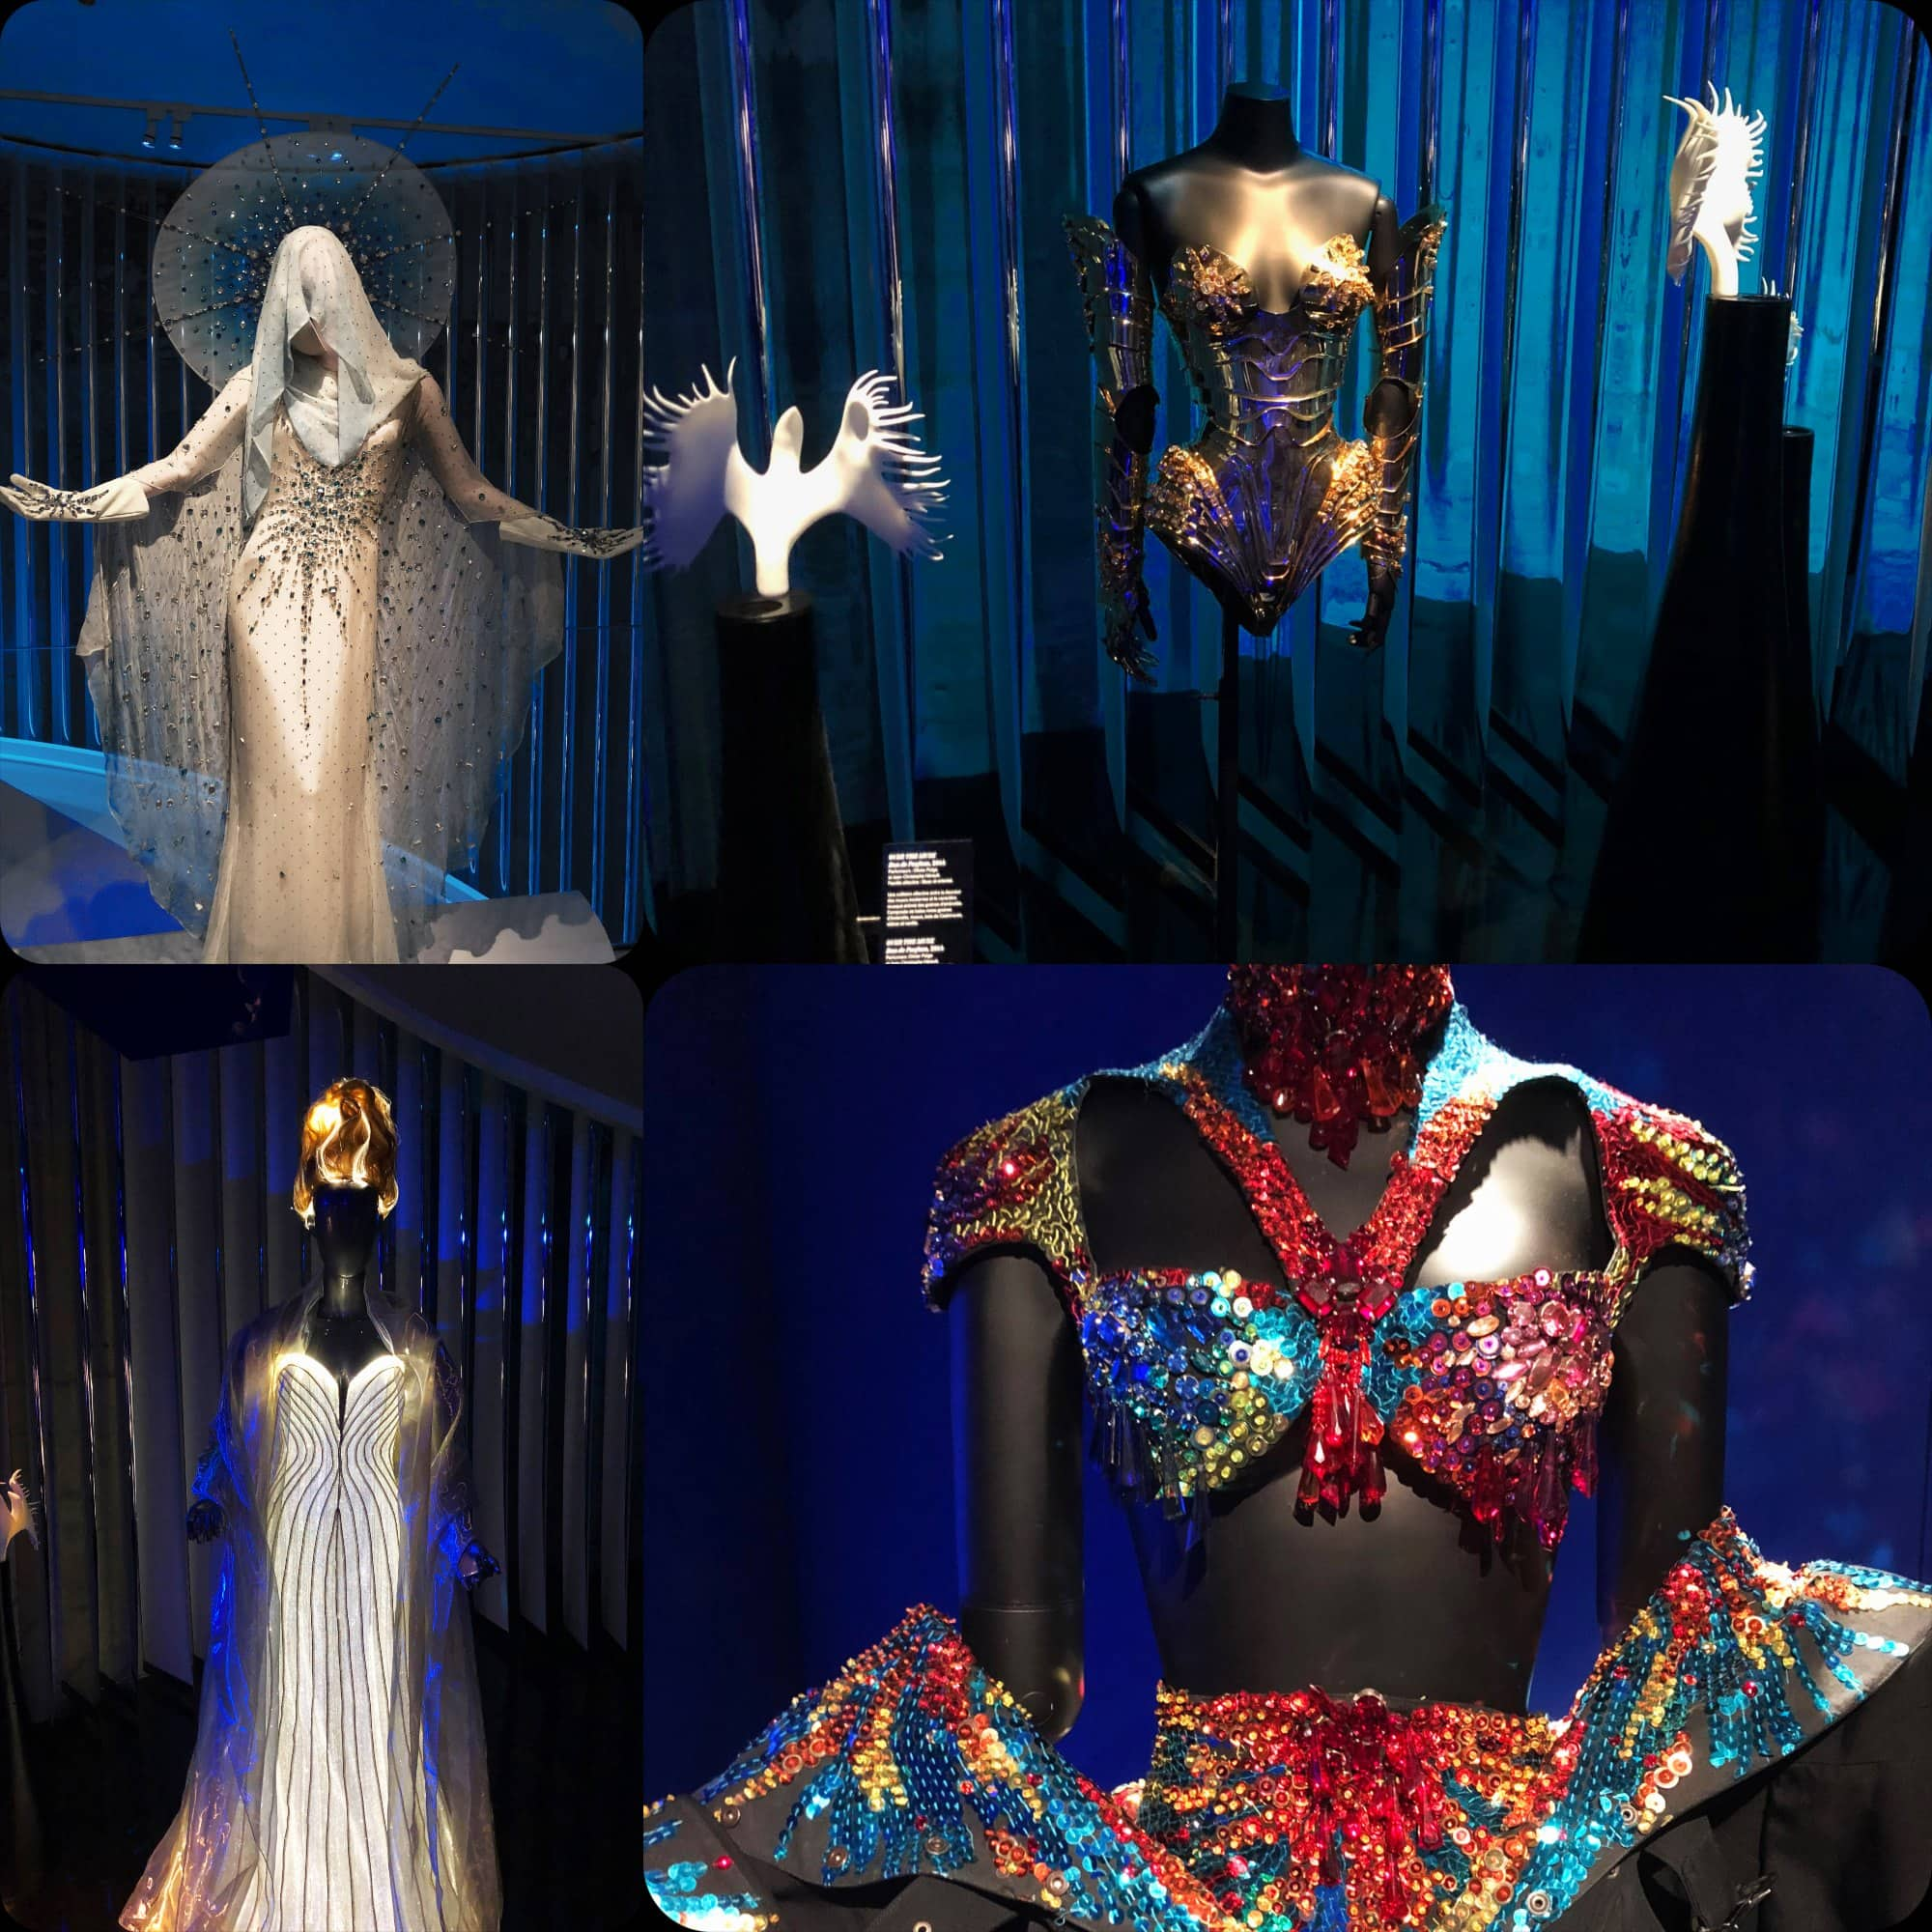 Exhibition of Thierry Mugler COUTURISSIME expo at MAD Paris by RUNWAY MAGAZINE